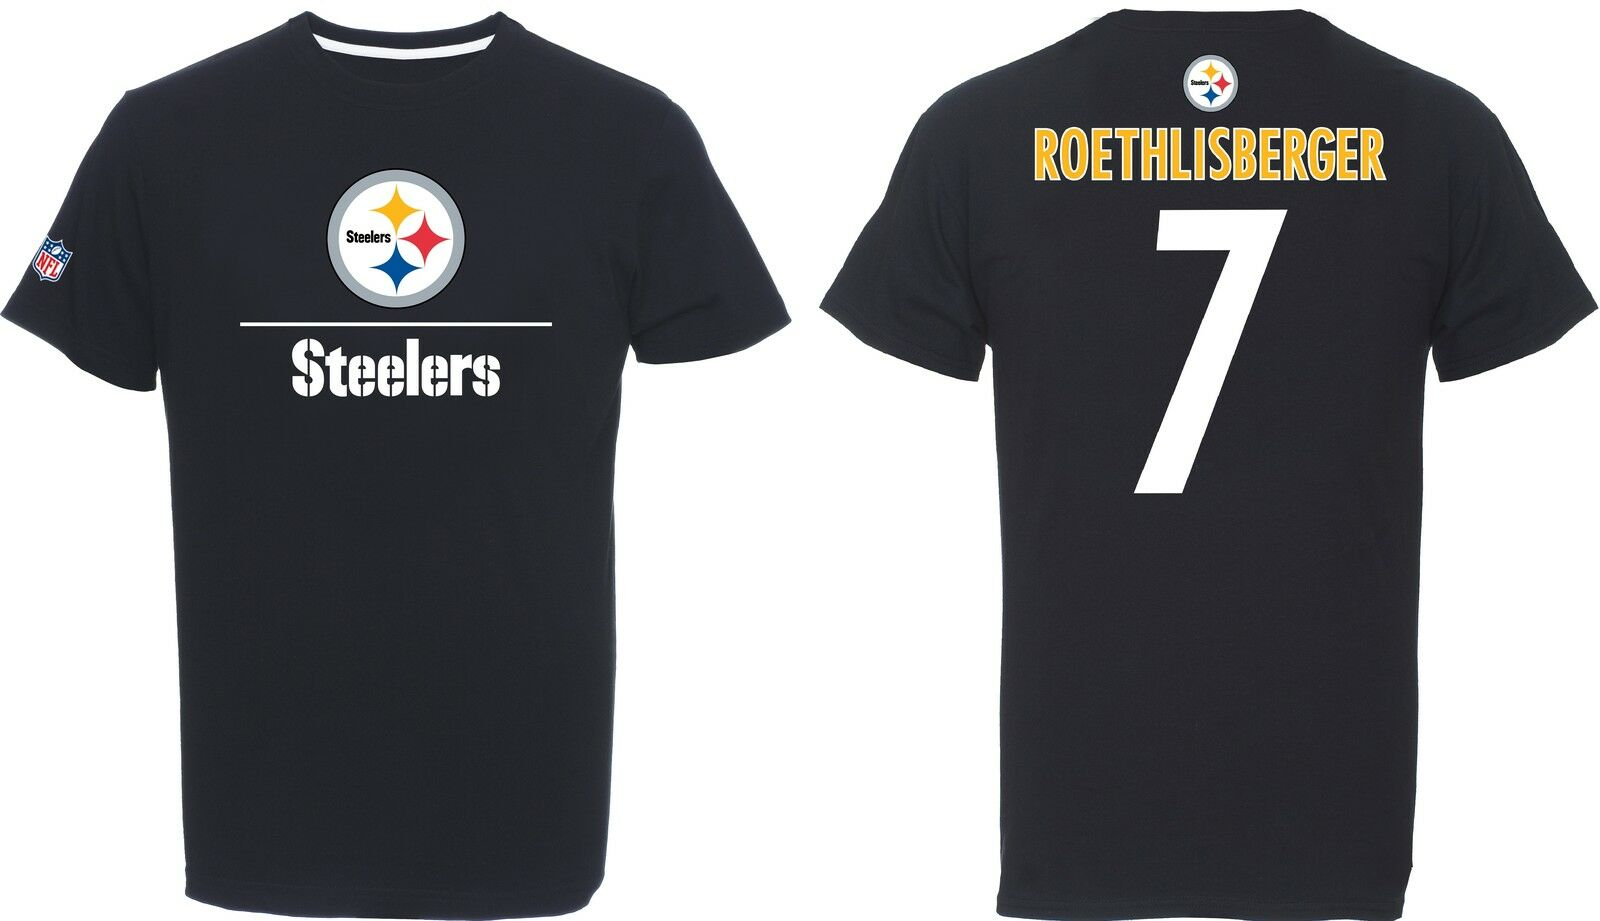 NFL NFL NFL Football T-Shirt PITTSBURGH STEELERS Ben Roethlisberger Nr 7 Aggressiv Speed 3c56e7